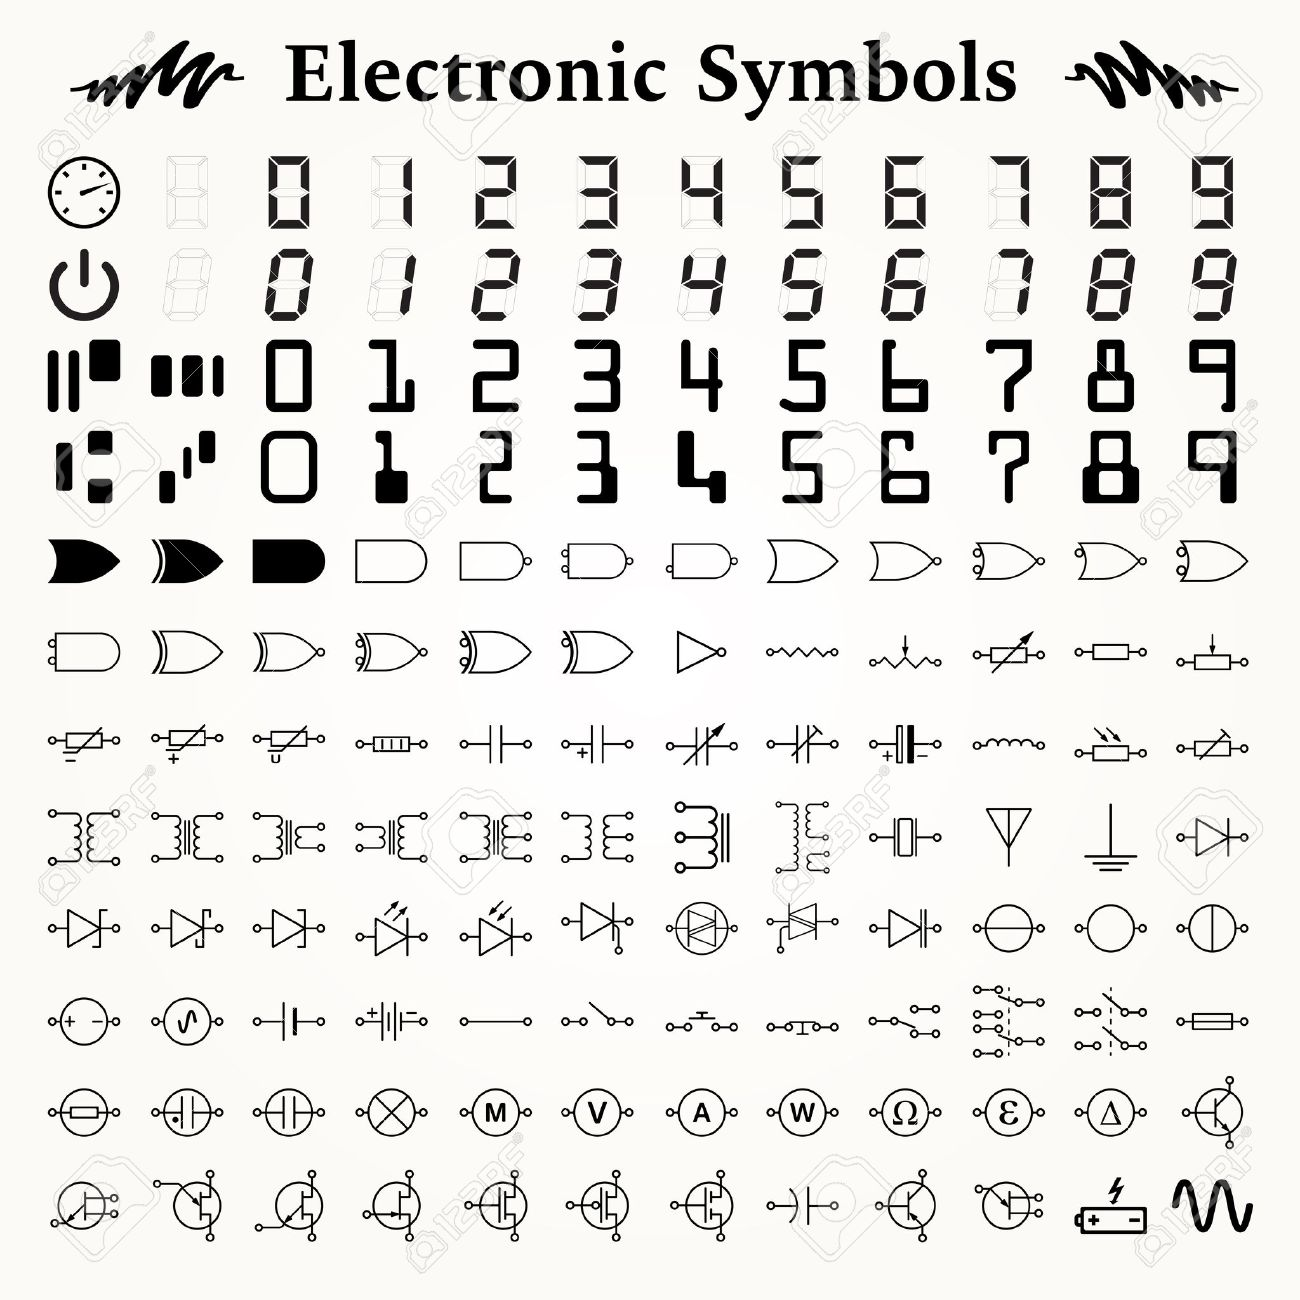 Electronic Symbols Symbol Wikipedia 96 And Circuit Picture Quiz By Max123 Elements Of Icons Signs Royalty Free